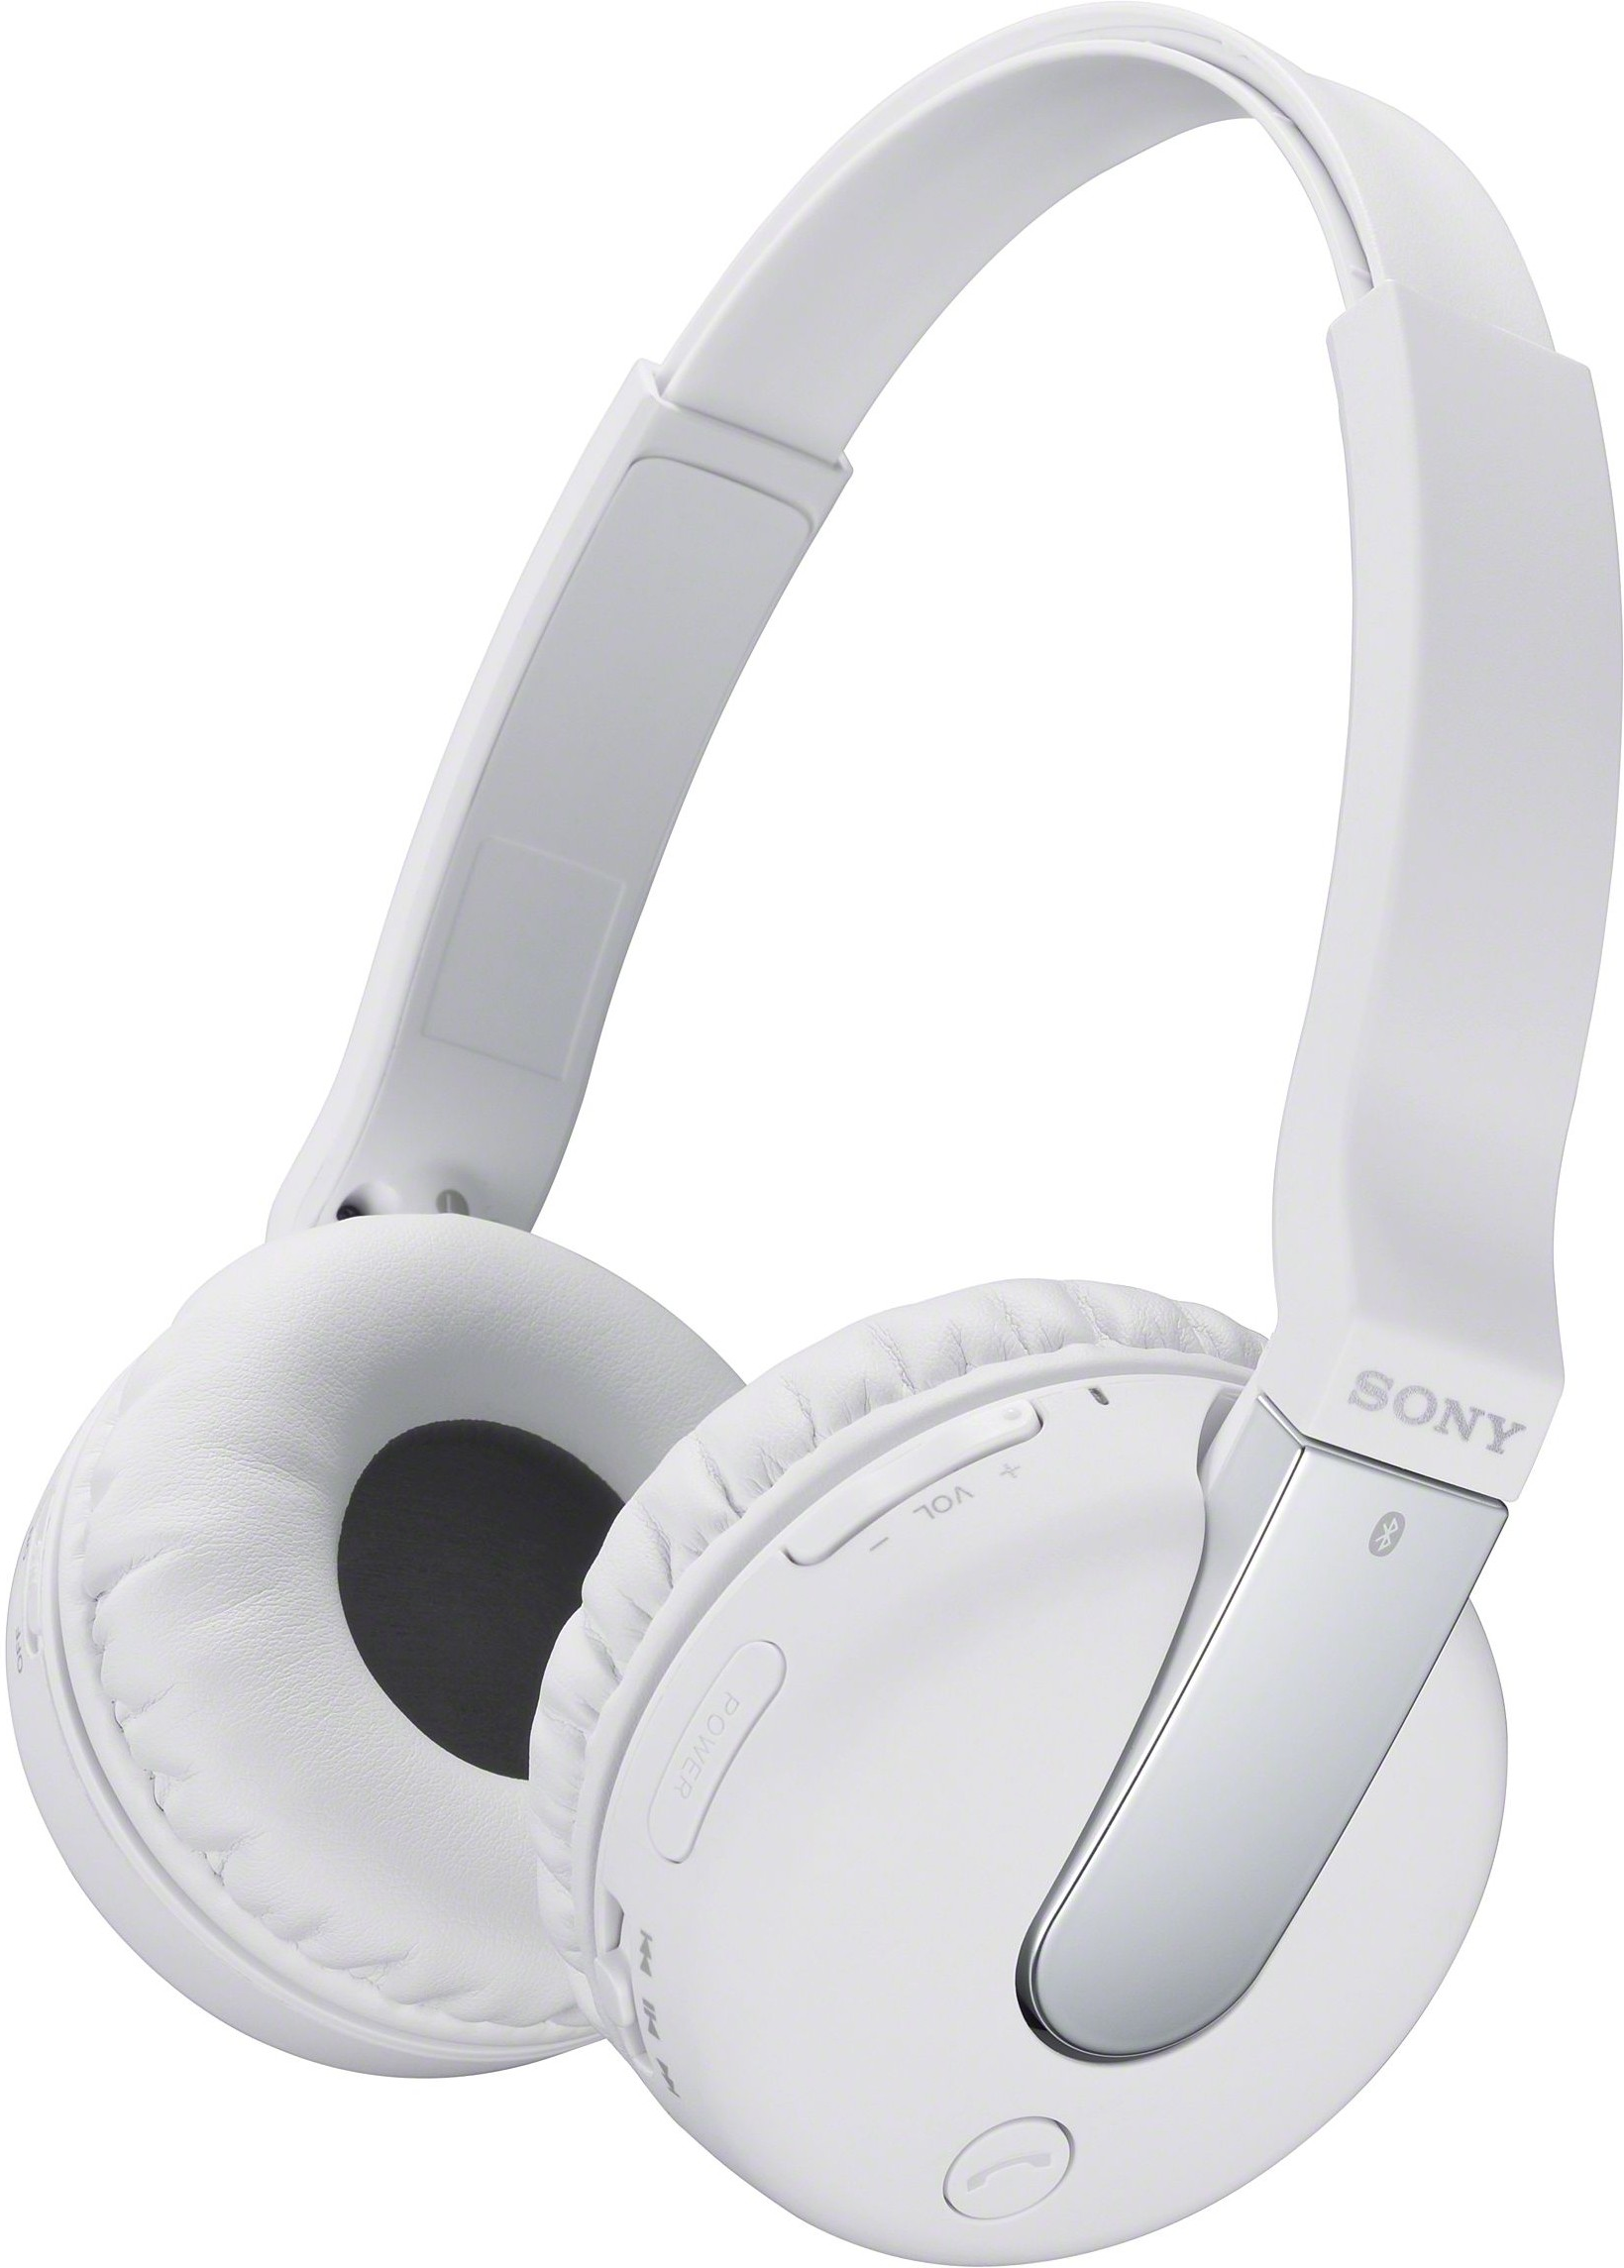 Sony DR-BTN200 WCE Wireless Headset With Mic(White)